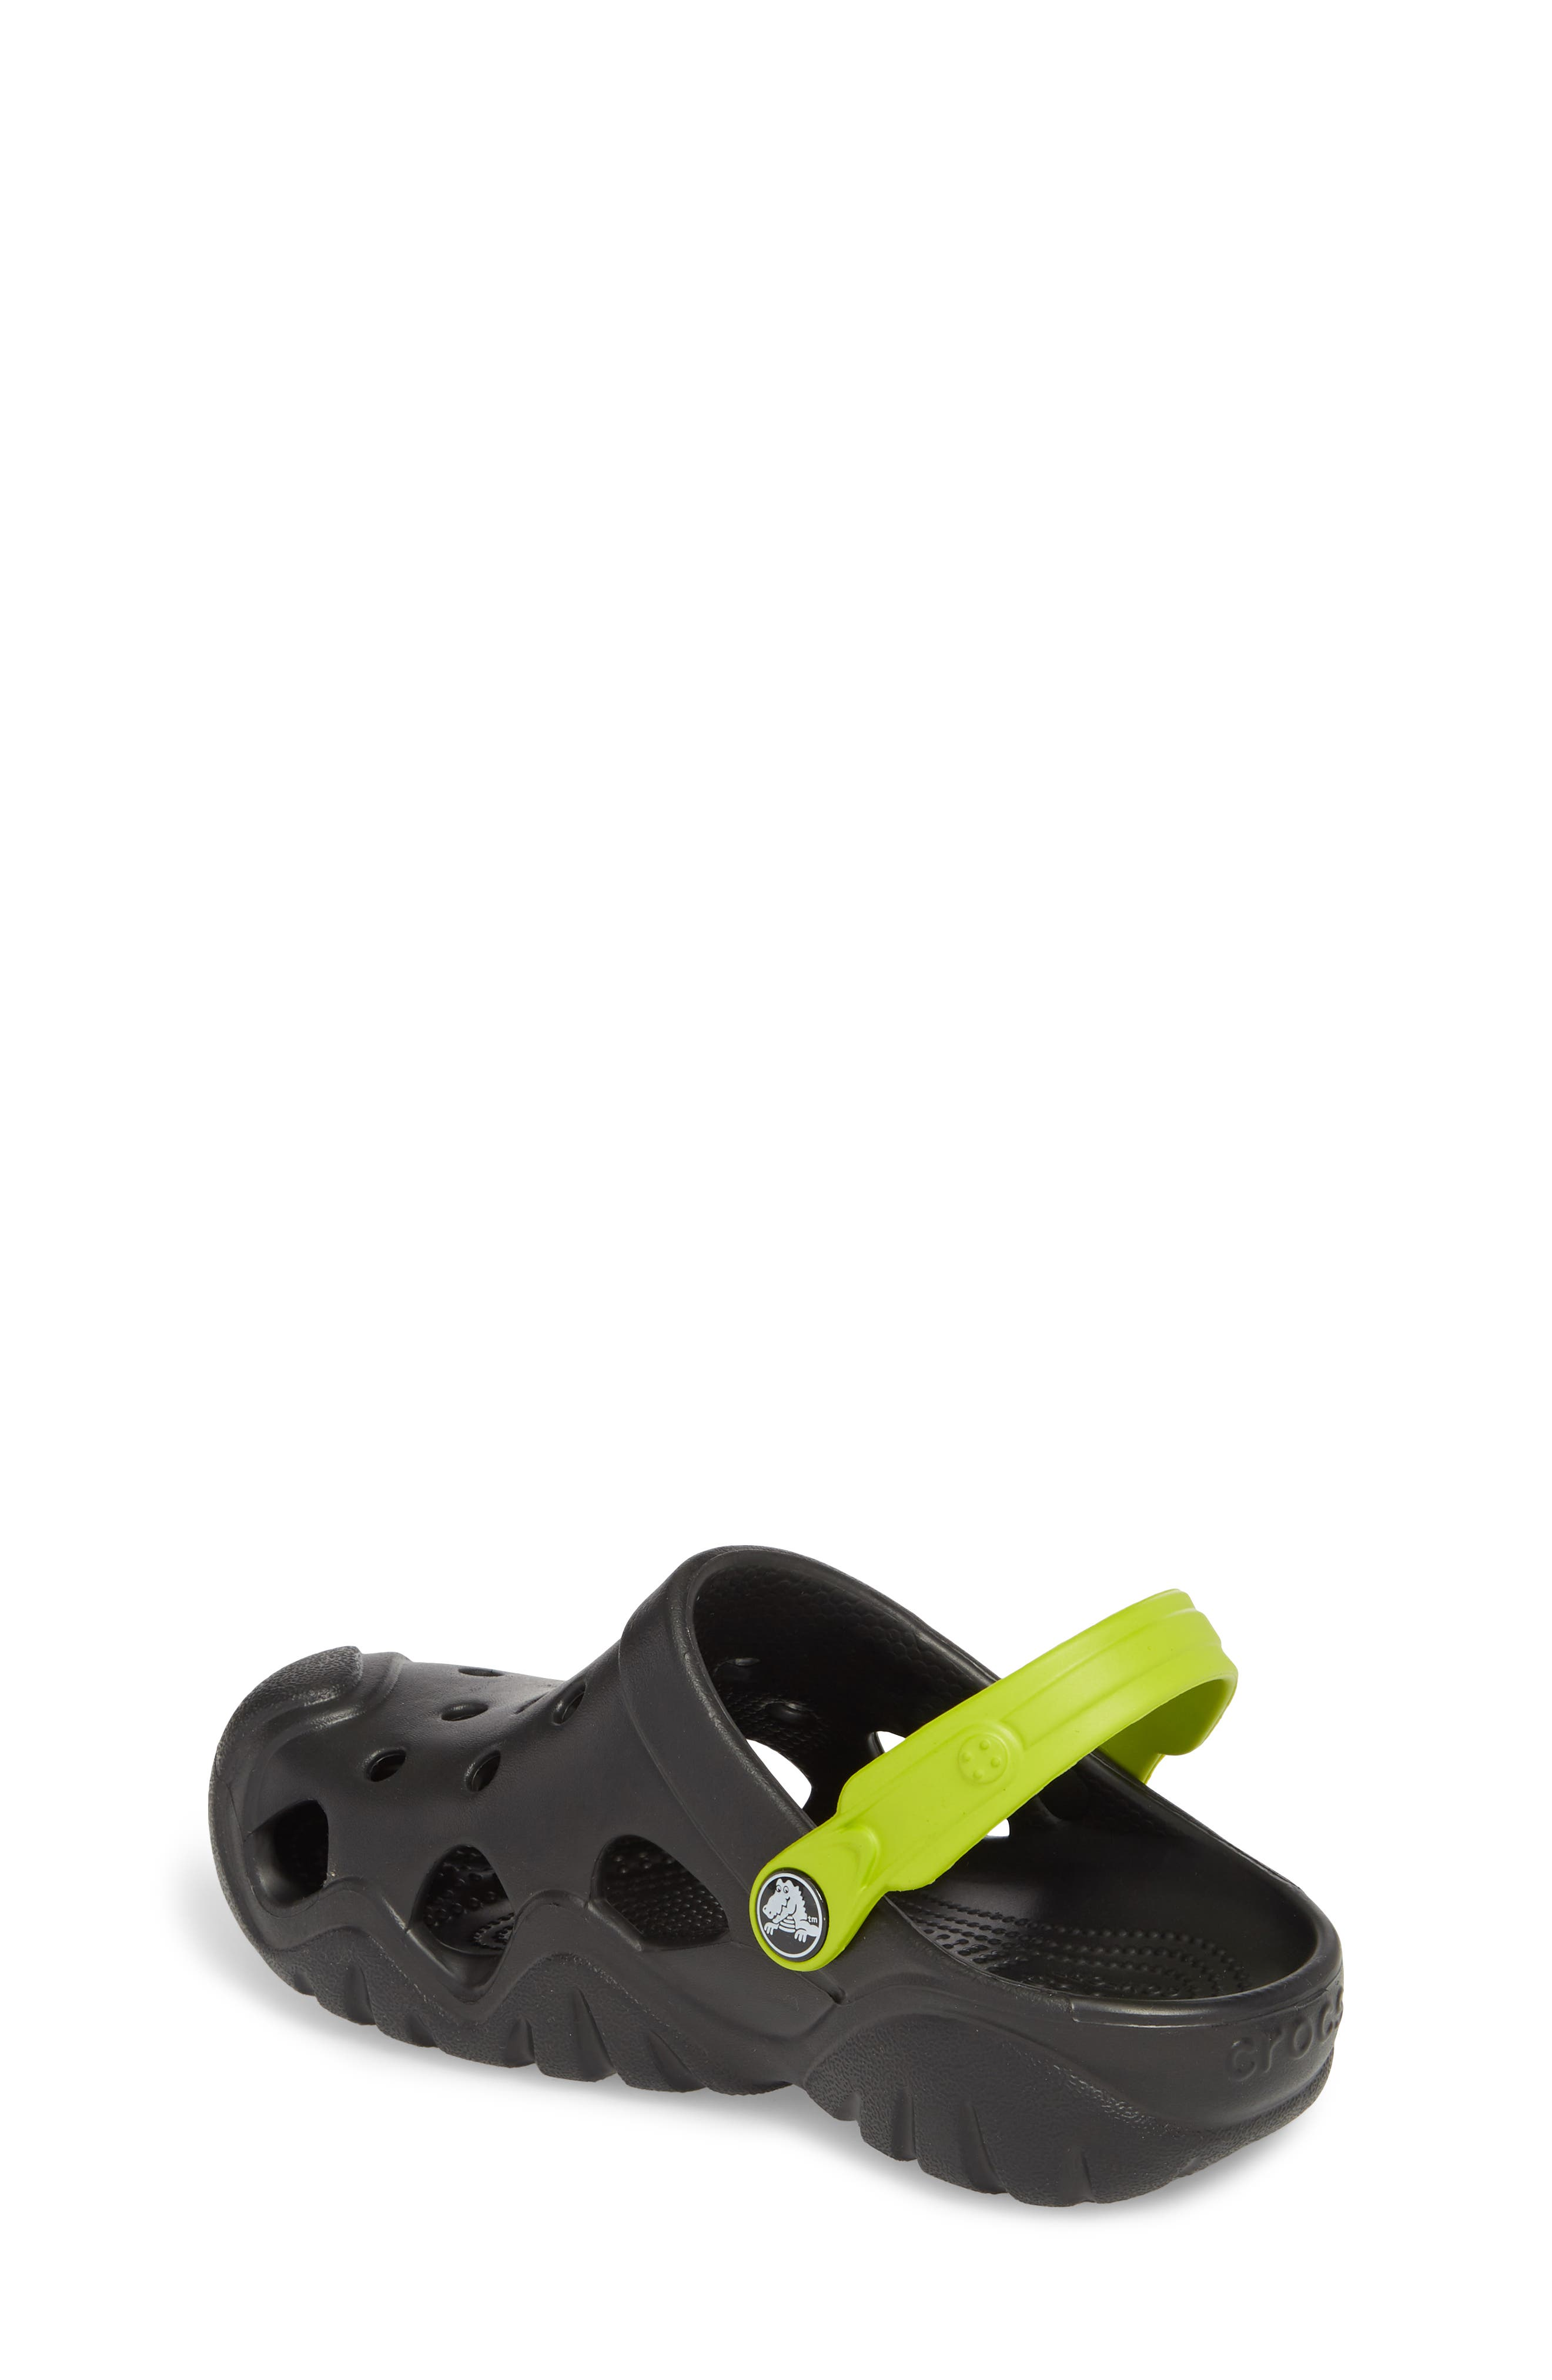 Swiftwater Clogs,                             Alternate thumbnail 2, color,                             001